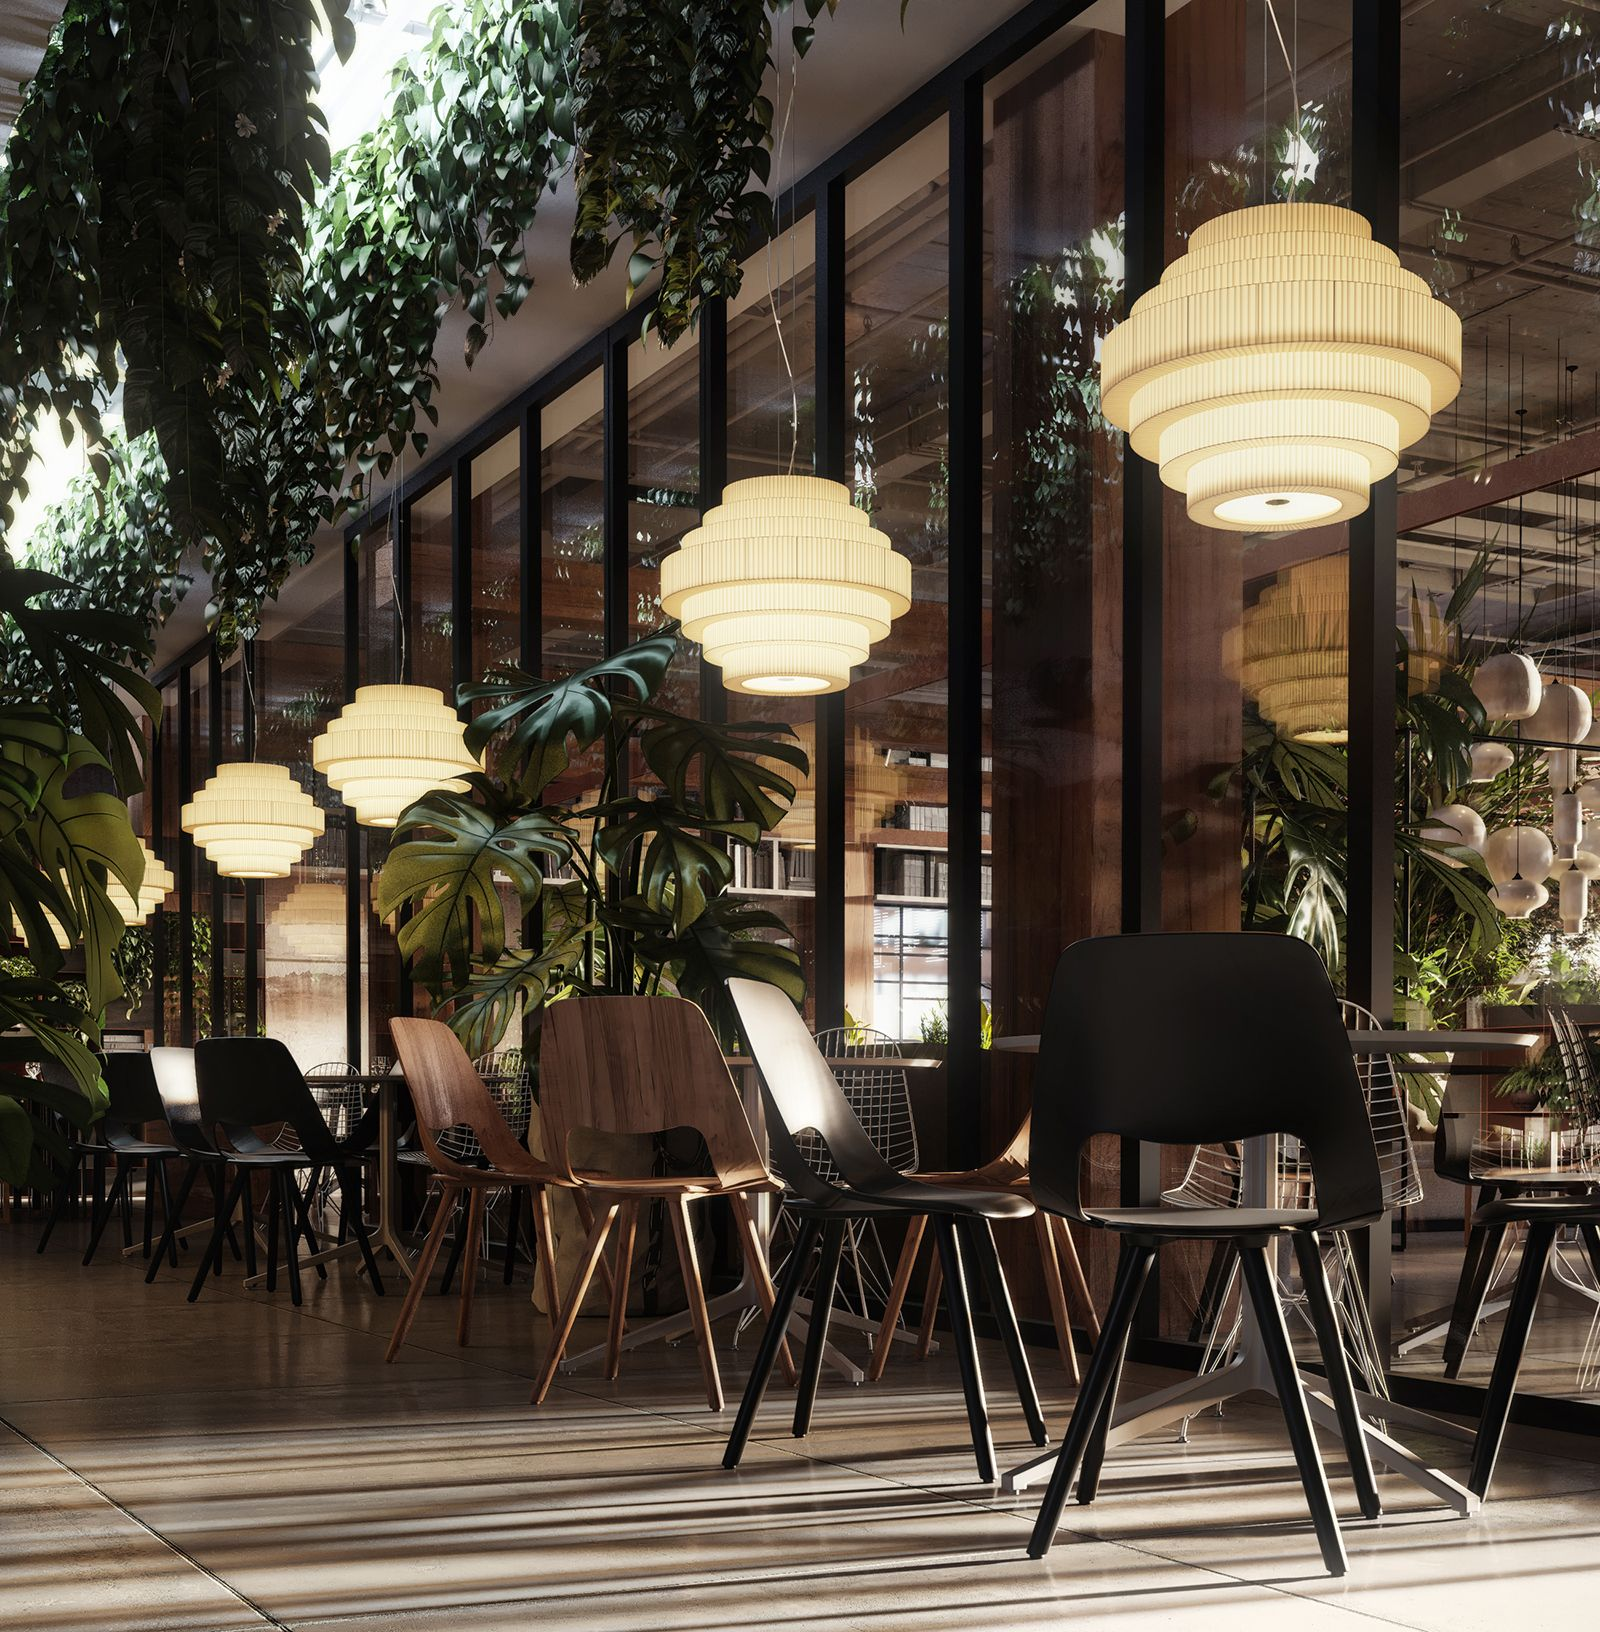 MOS was chosen by S&T Architects for this restaurant The Forest